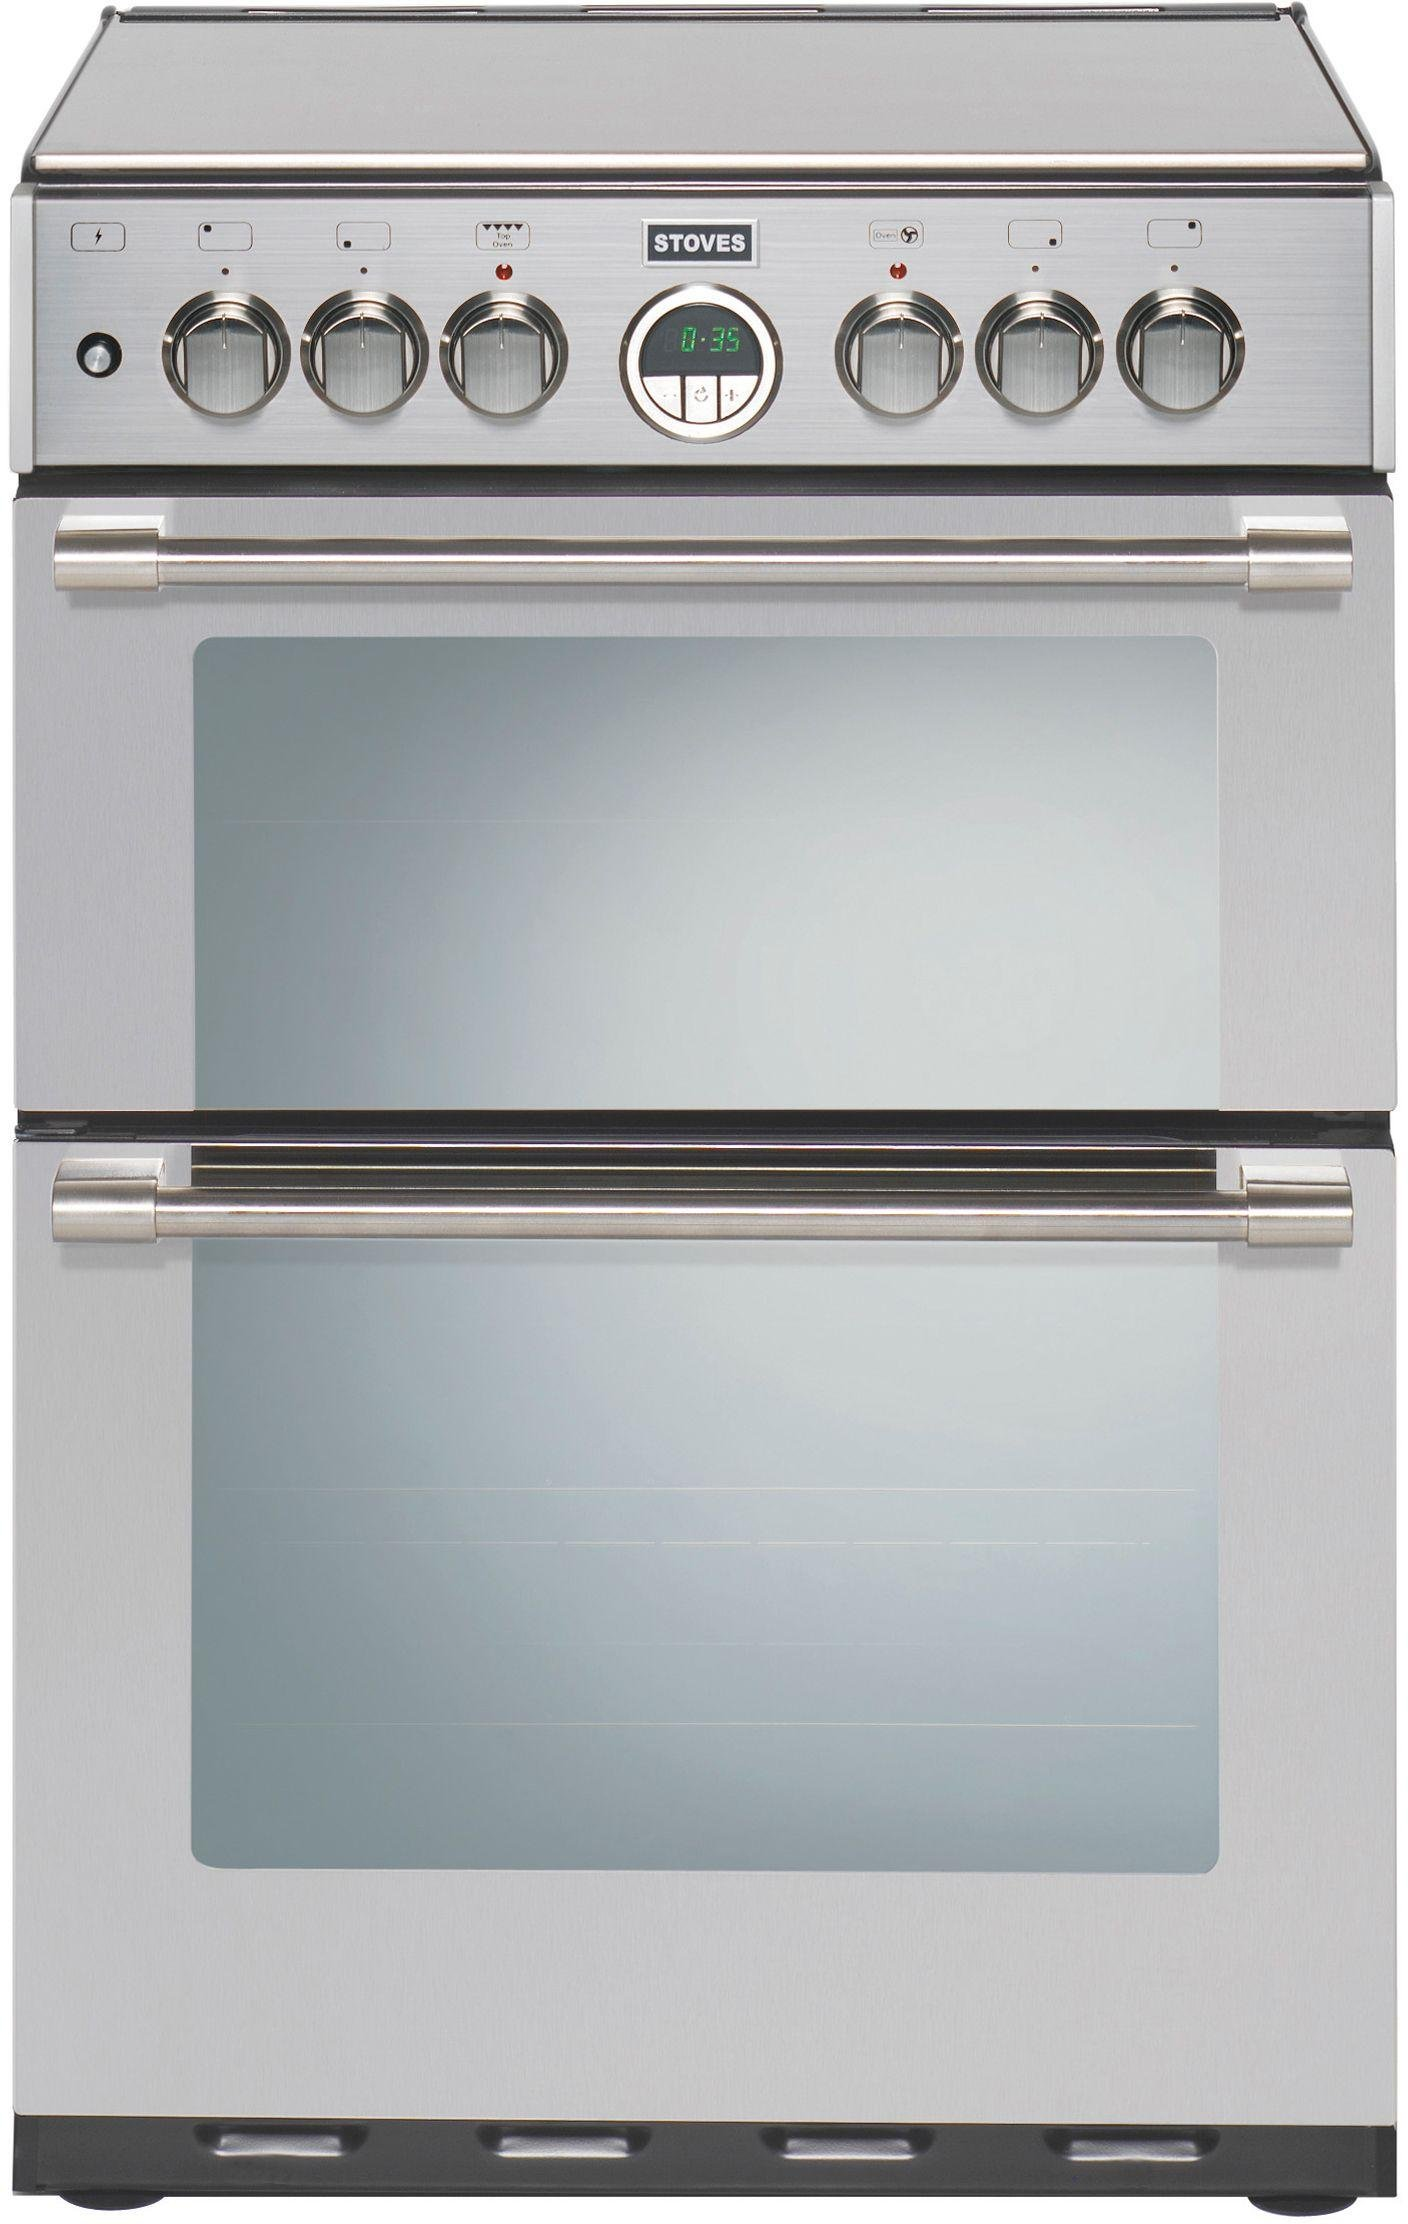 Stoves Sterling 600 Dual Fuel Cooker - Stainless Steel